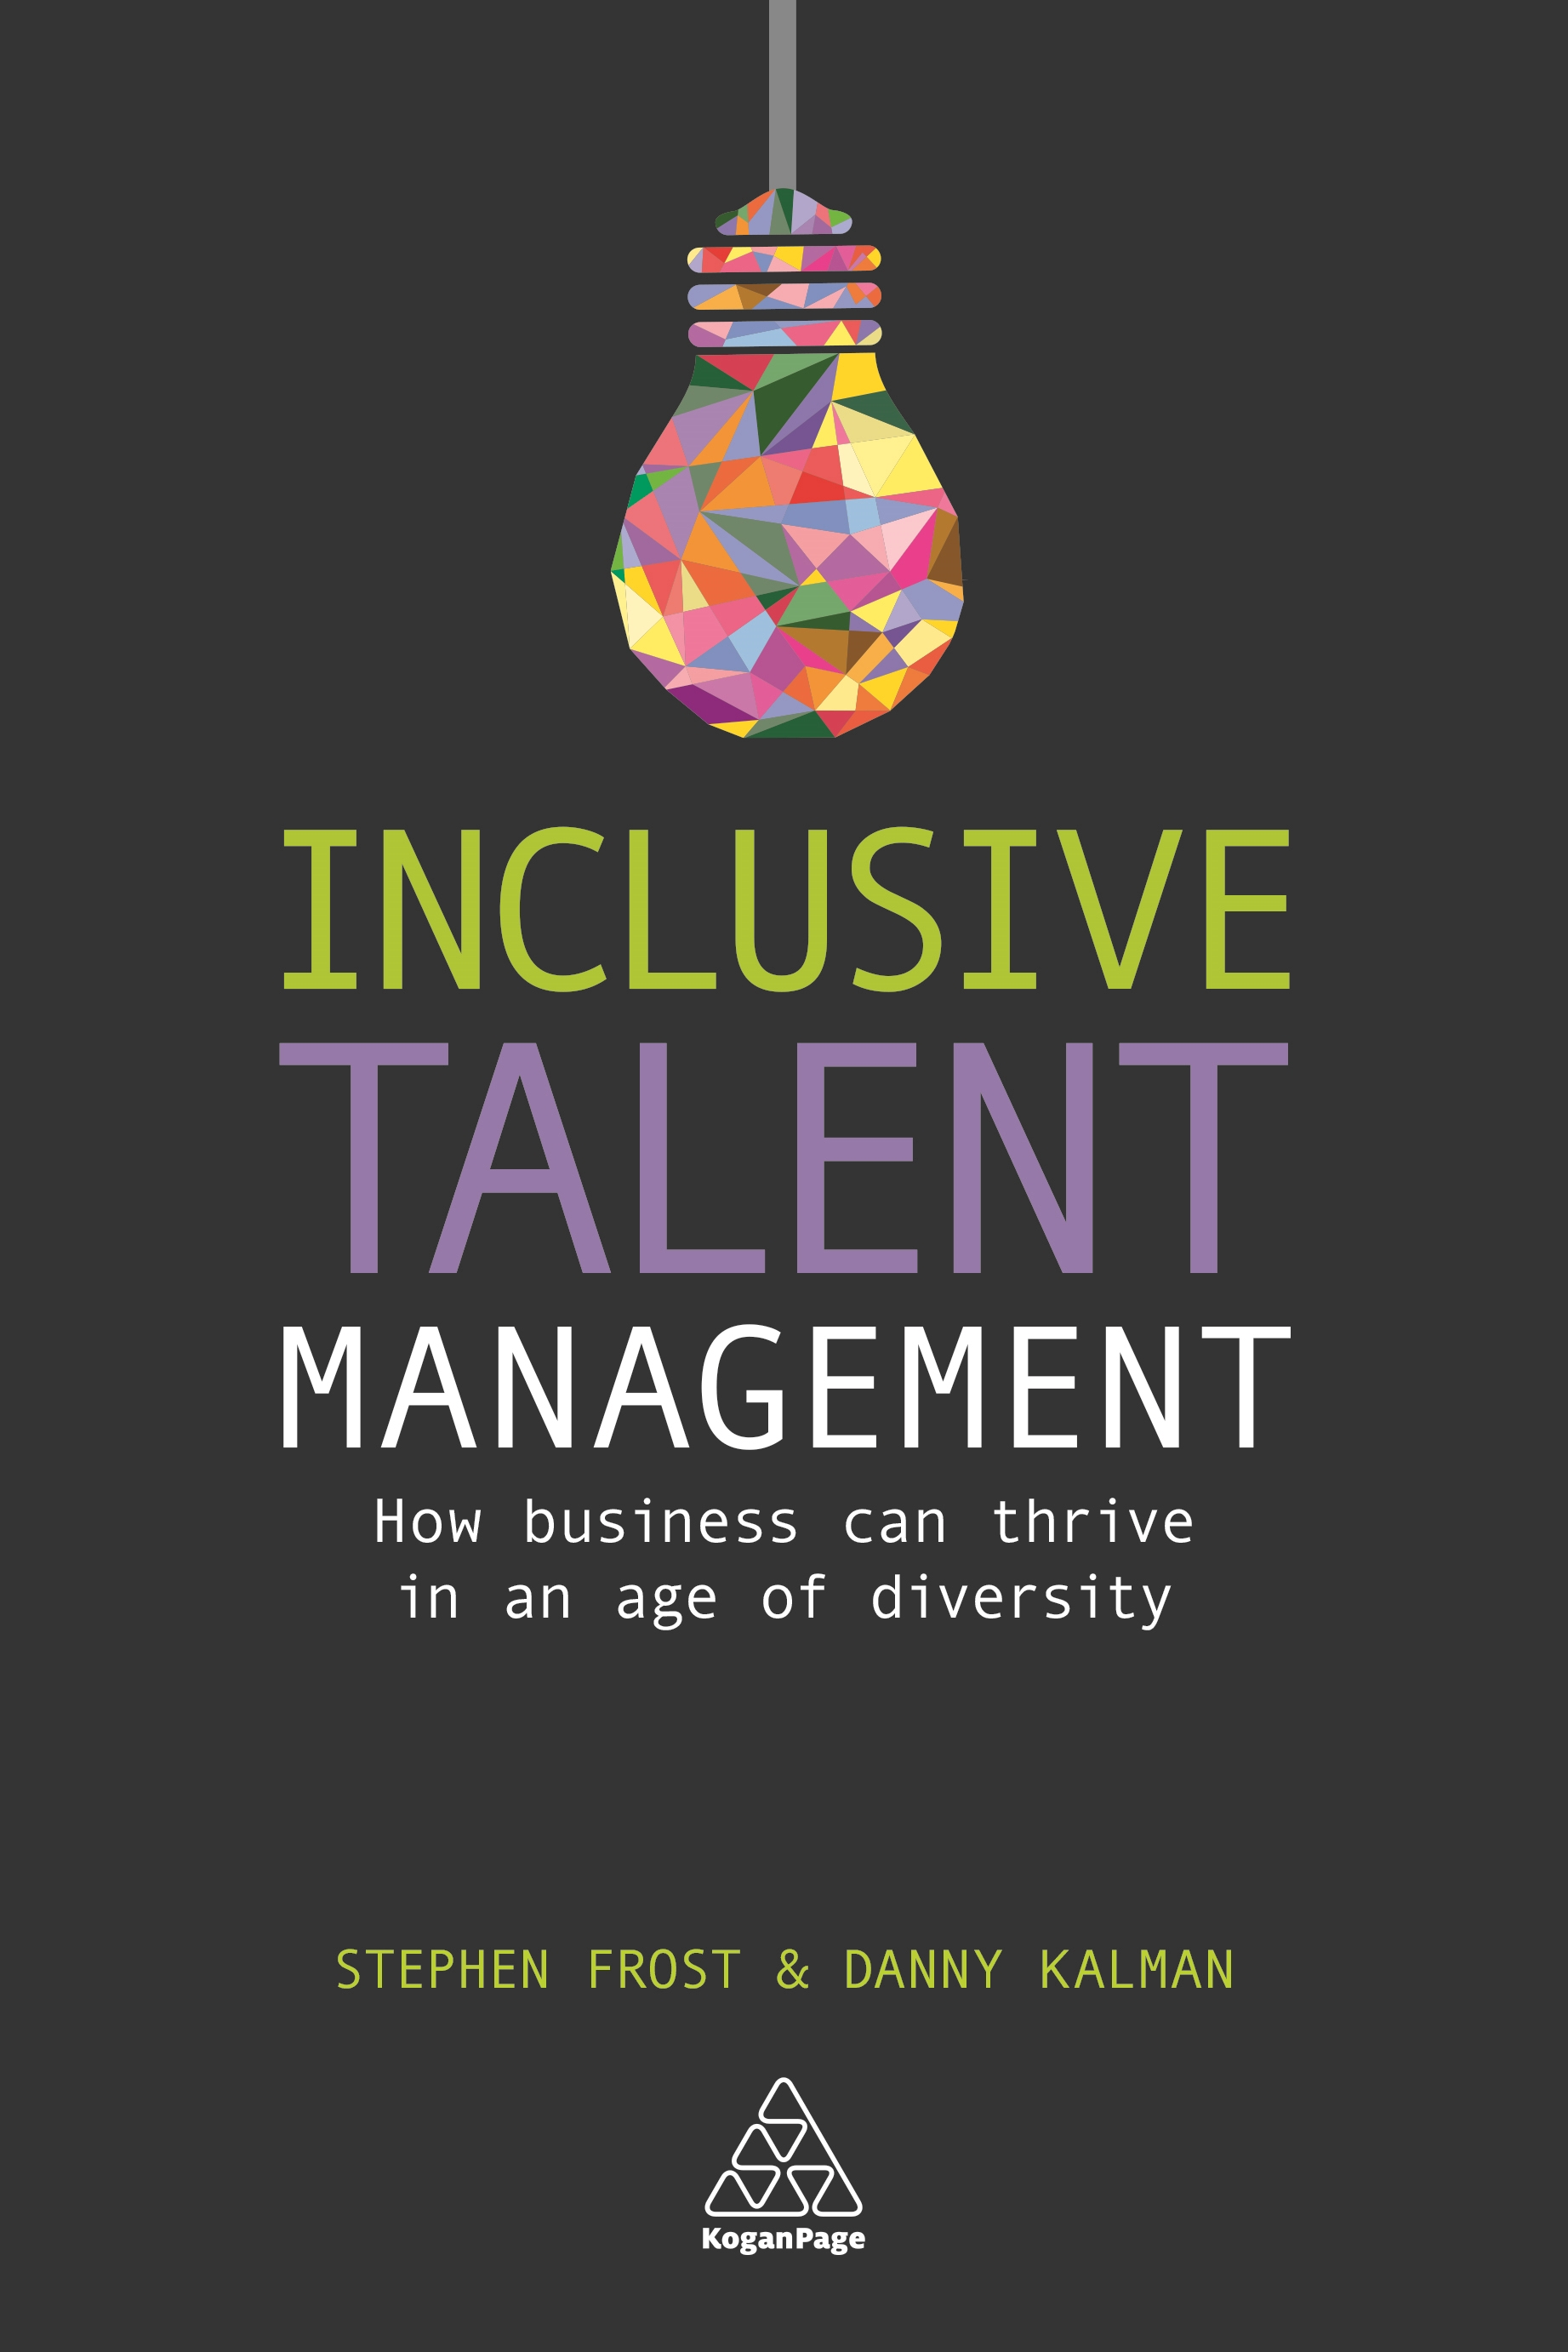 Inclusive Talent Management by Stephen Frost